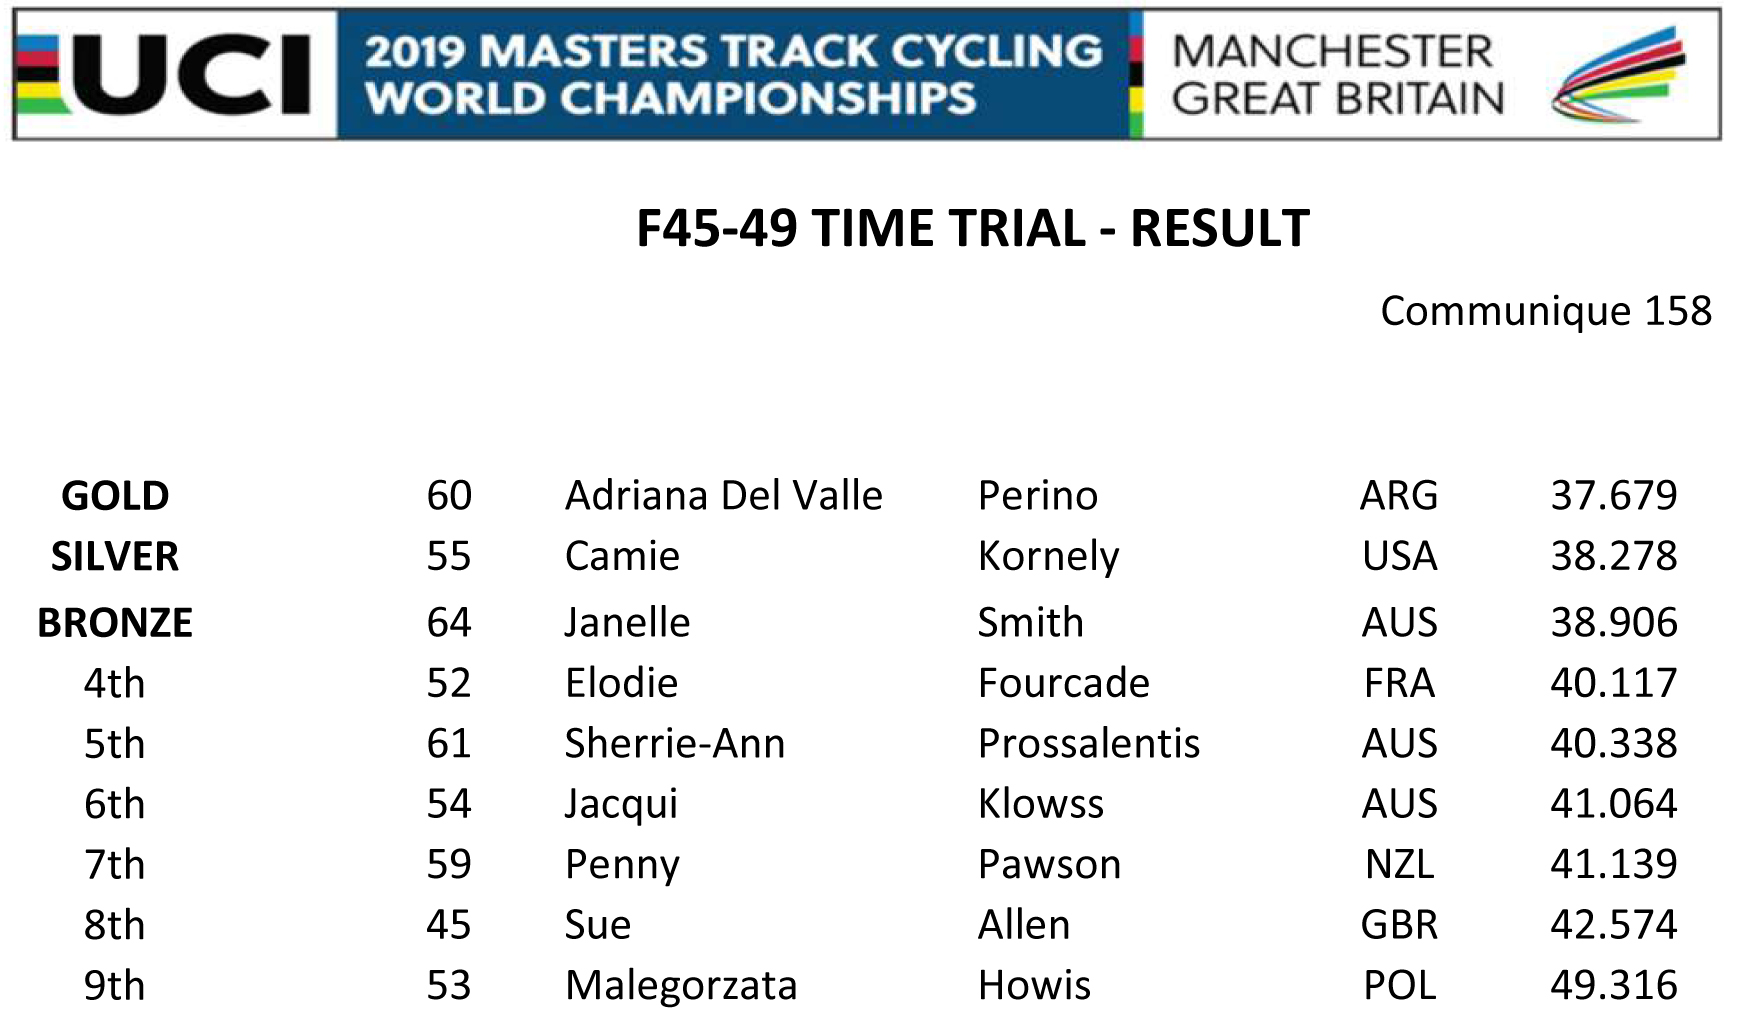 F45 49 TIME TRIAL RESULT